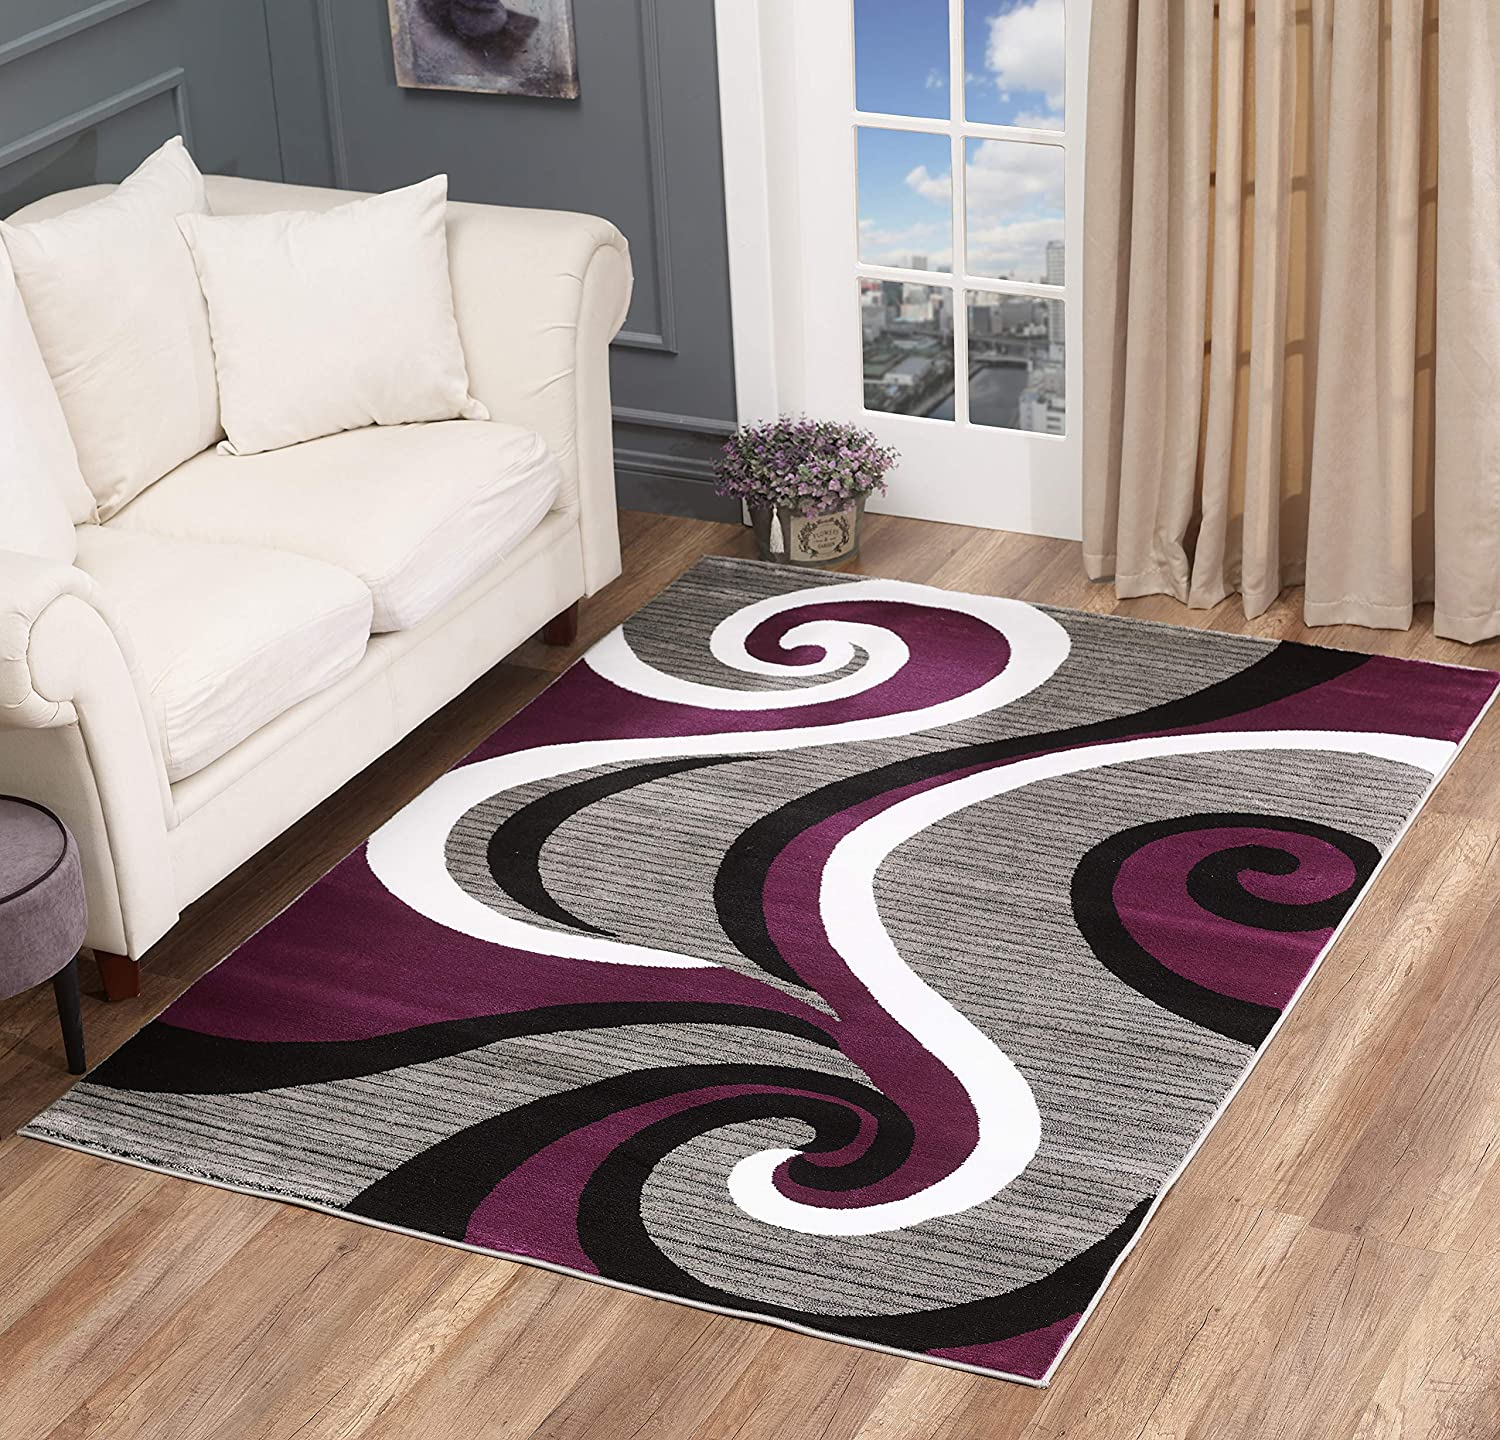 Amazon Com Glory Rugs Black Area Rug 5x7 Purple Gray Modern Carpet Bedroom Living Room Contemporary Dining Accent Sevilla Collection 4817a Purple Kitchen Dining